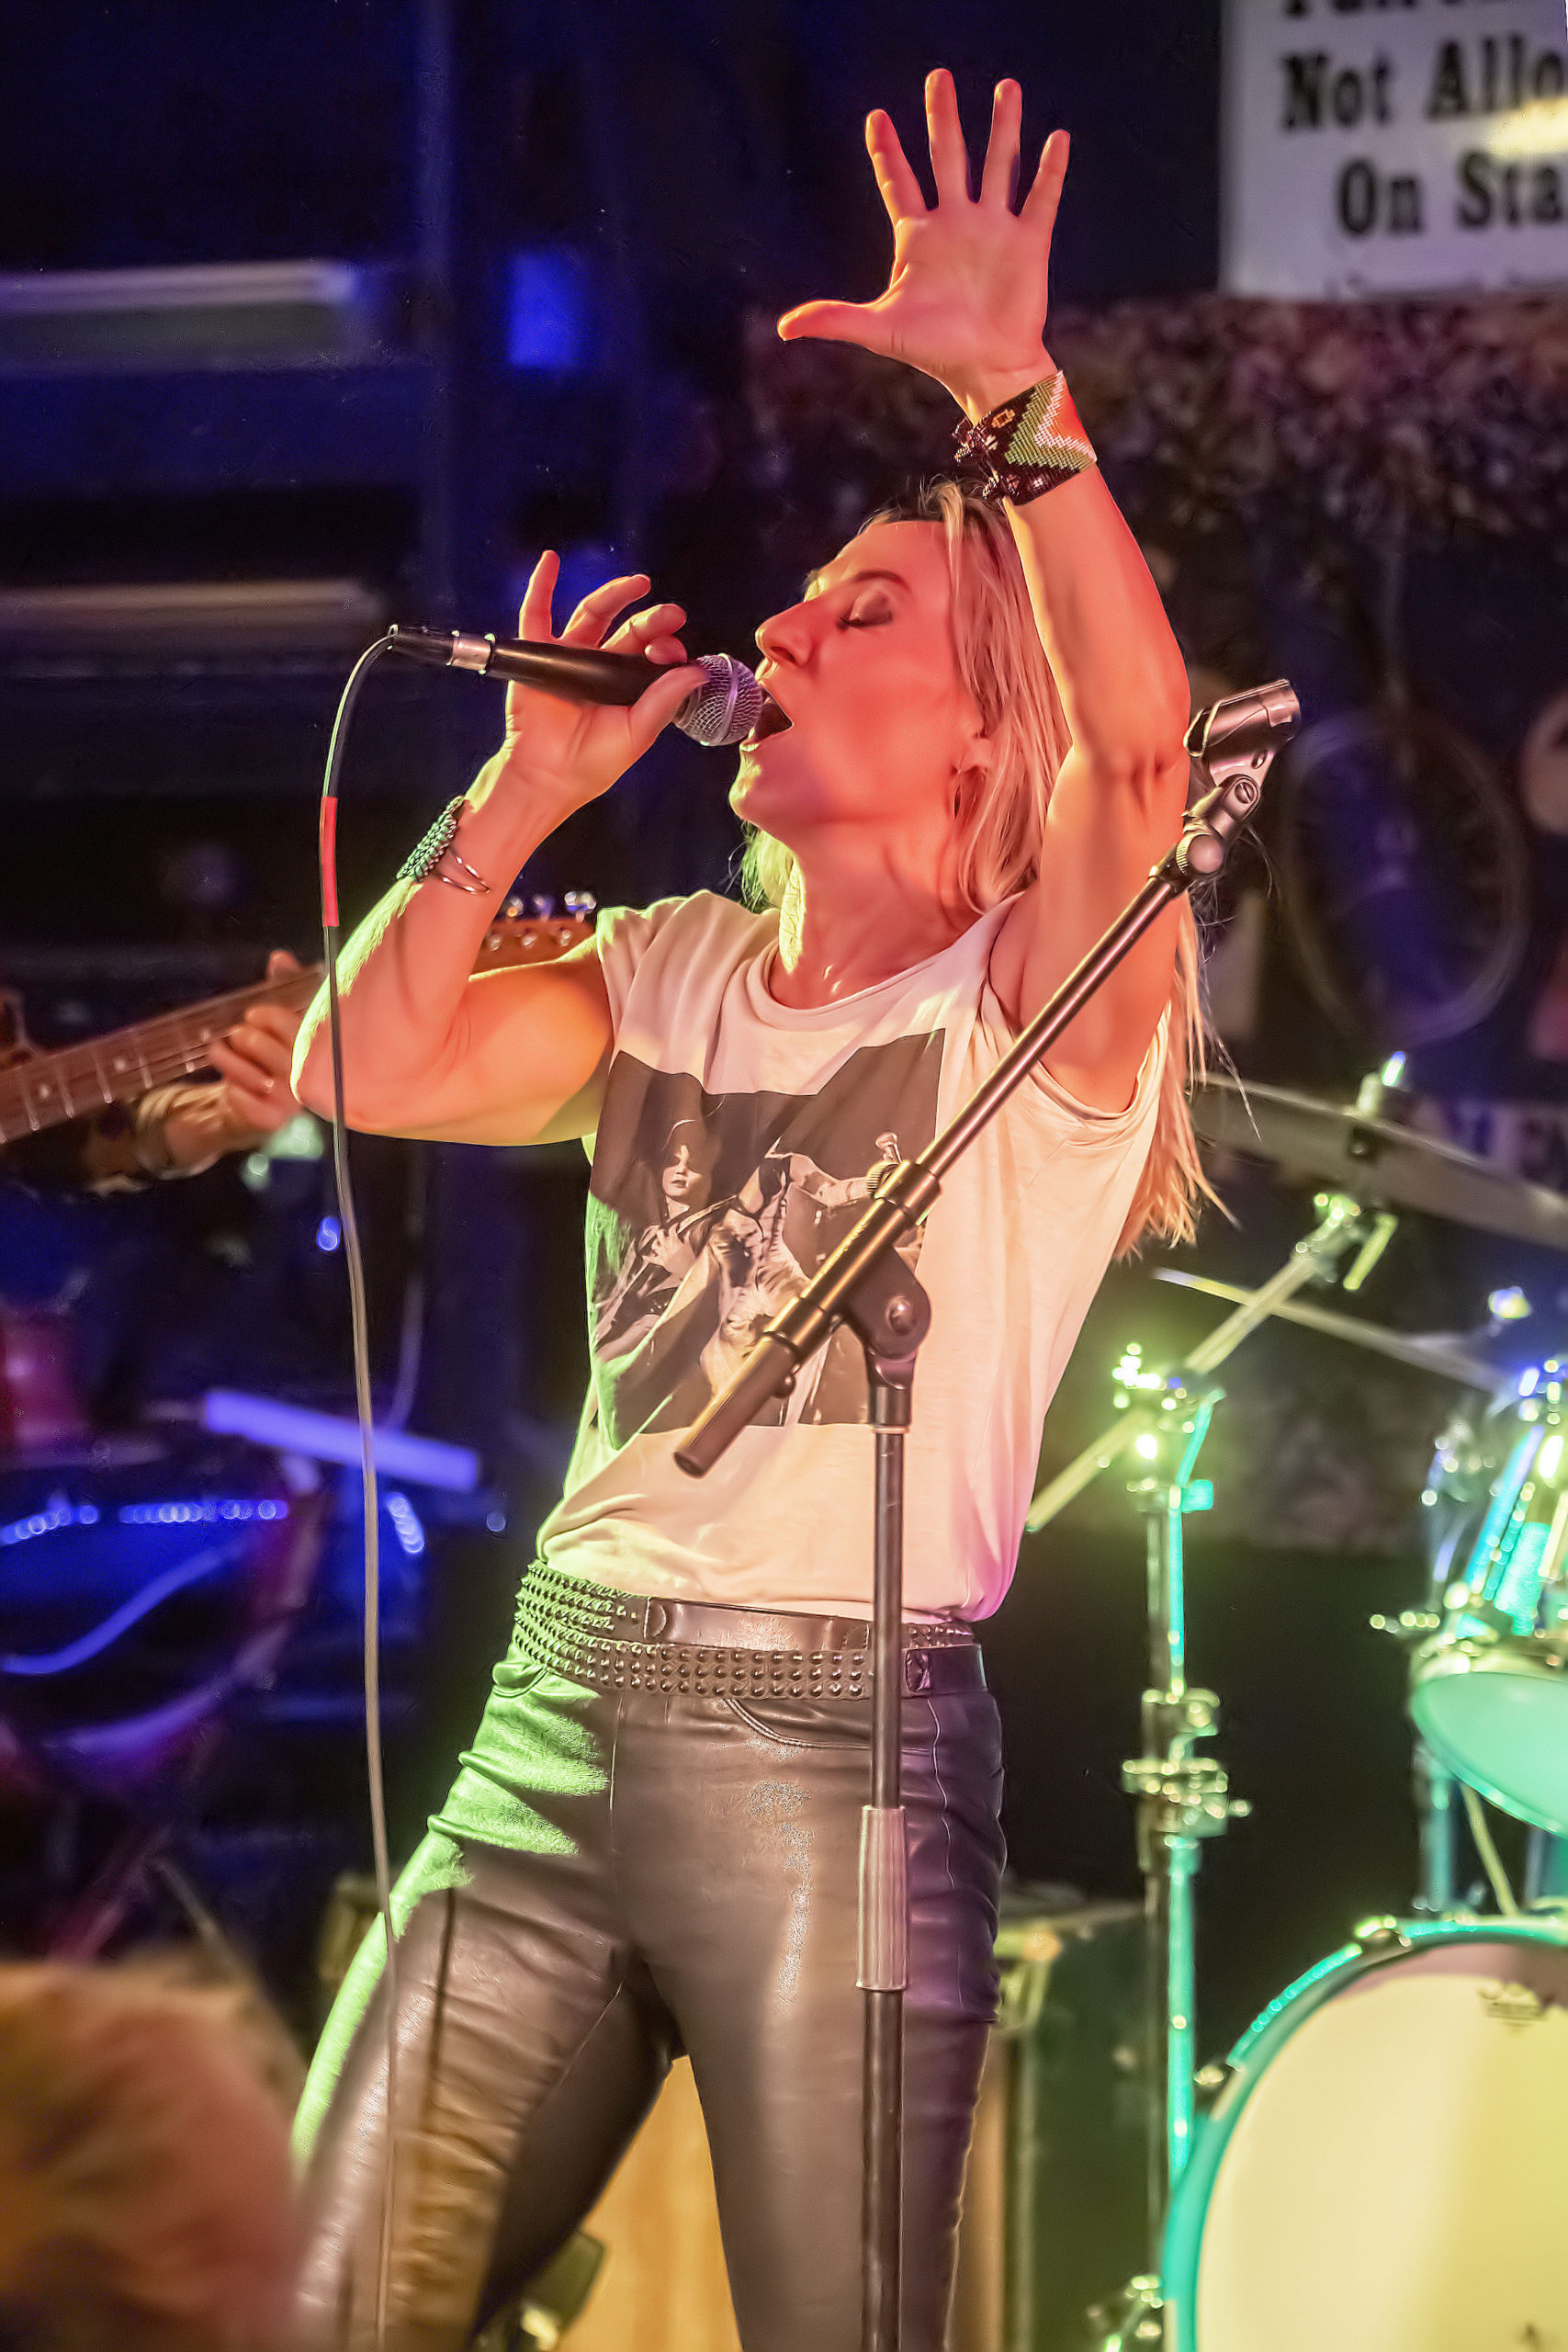 Lauren Hannah of the band Minxx rocks out during the 4th Annual Battle of the Fantasy Girl Bands to benefit the Neo-Political Cowgirls that was held at the Stephen Talkhouse in Amagansett on Saturday night.  MICHAEL HELLER